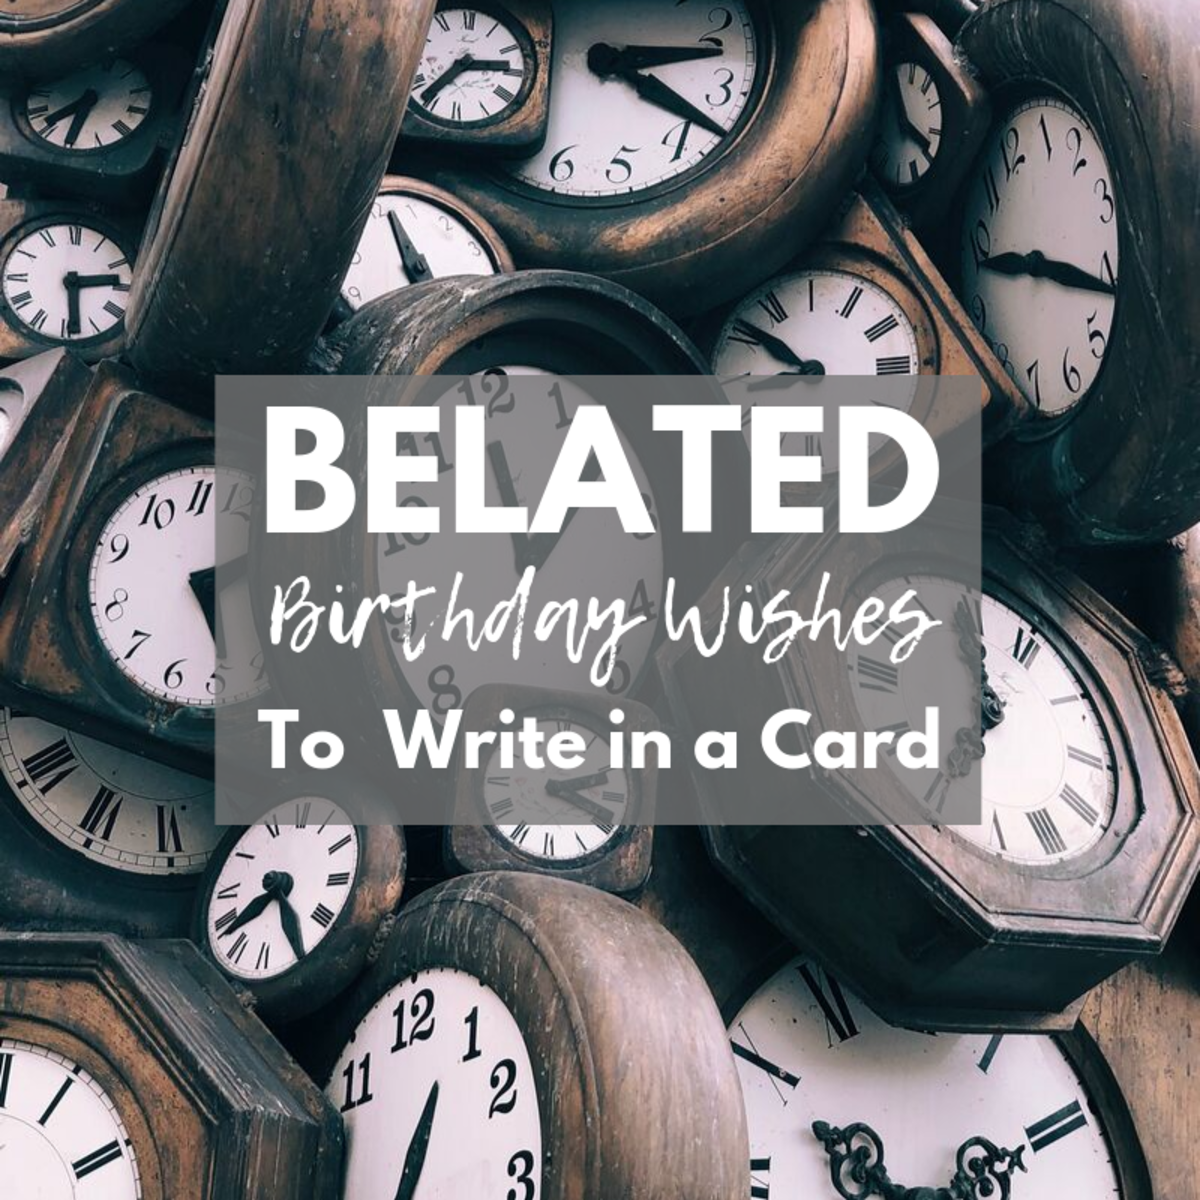 Belated Birthday Messages: Funny and Sincere Wishes to Write in a Card